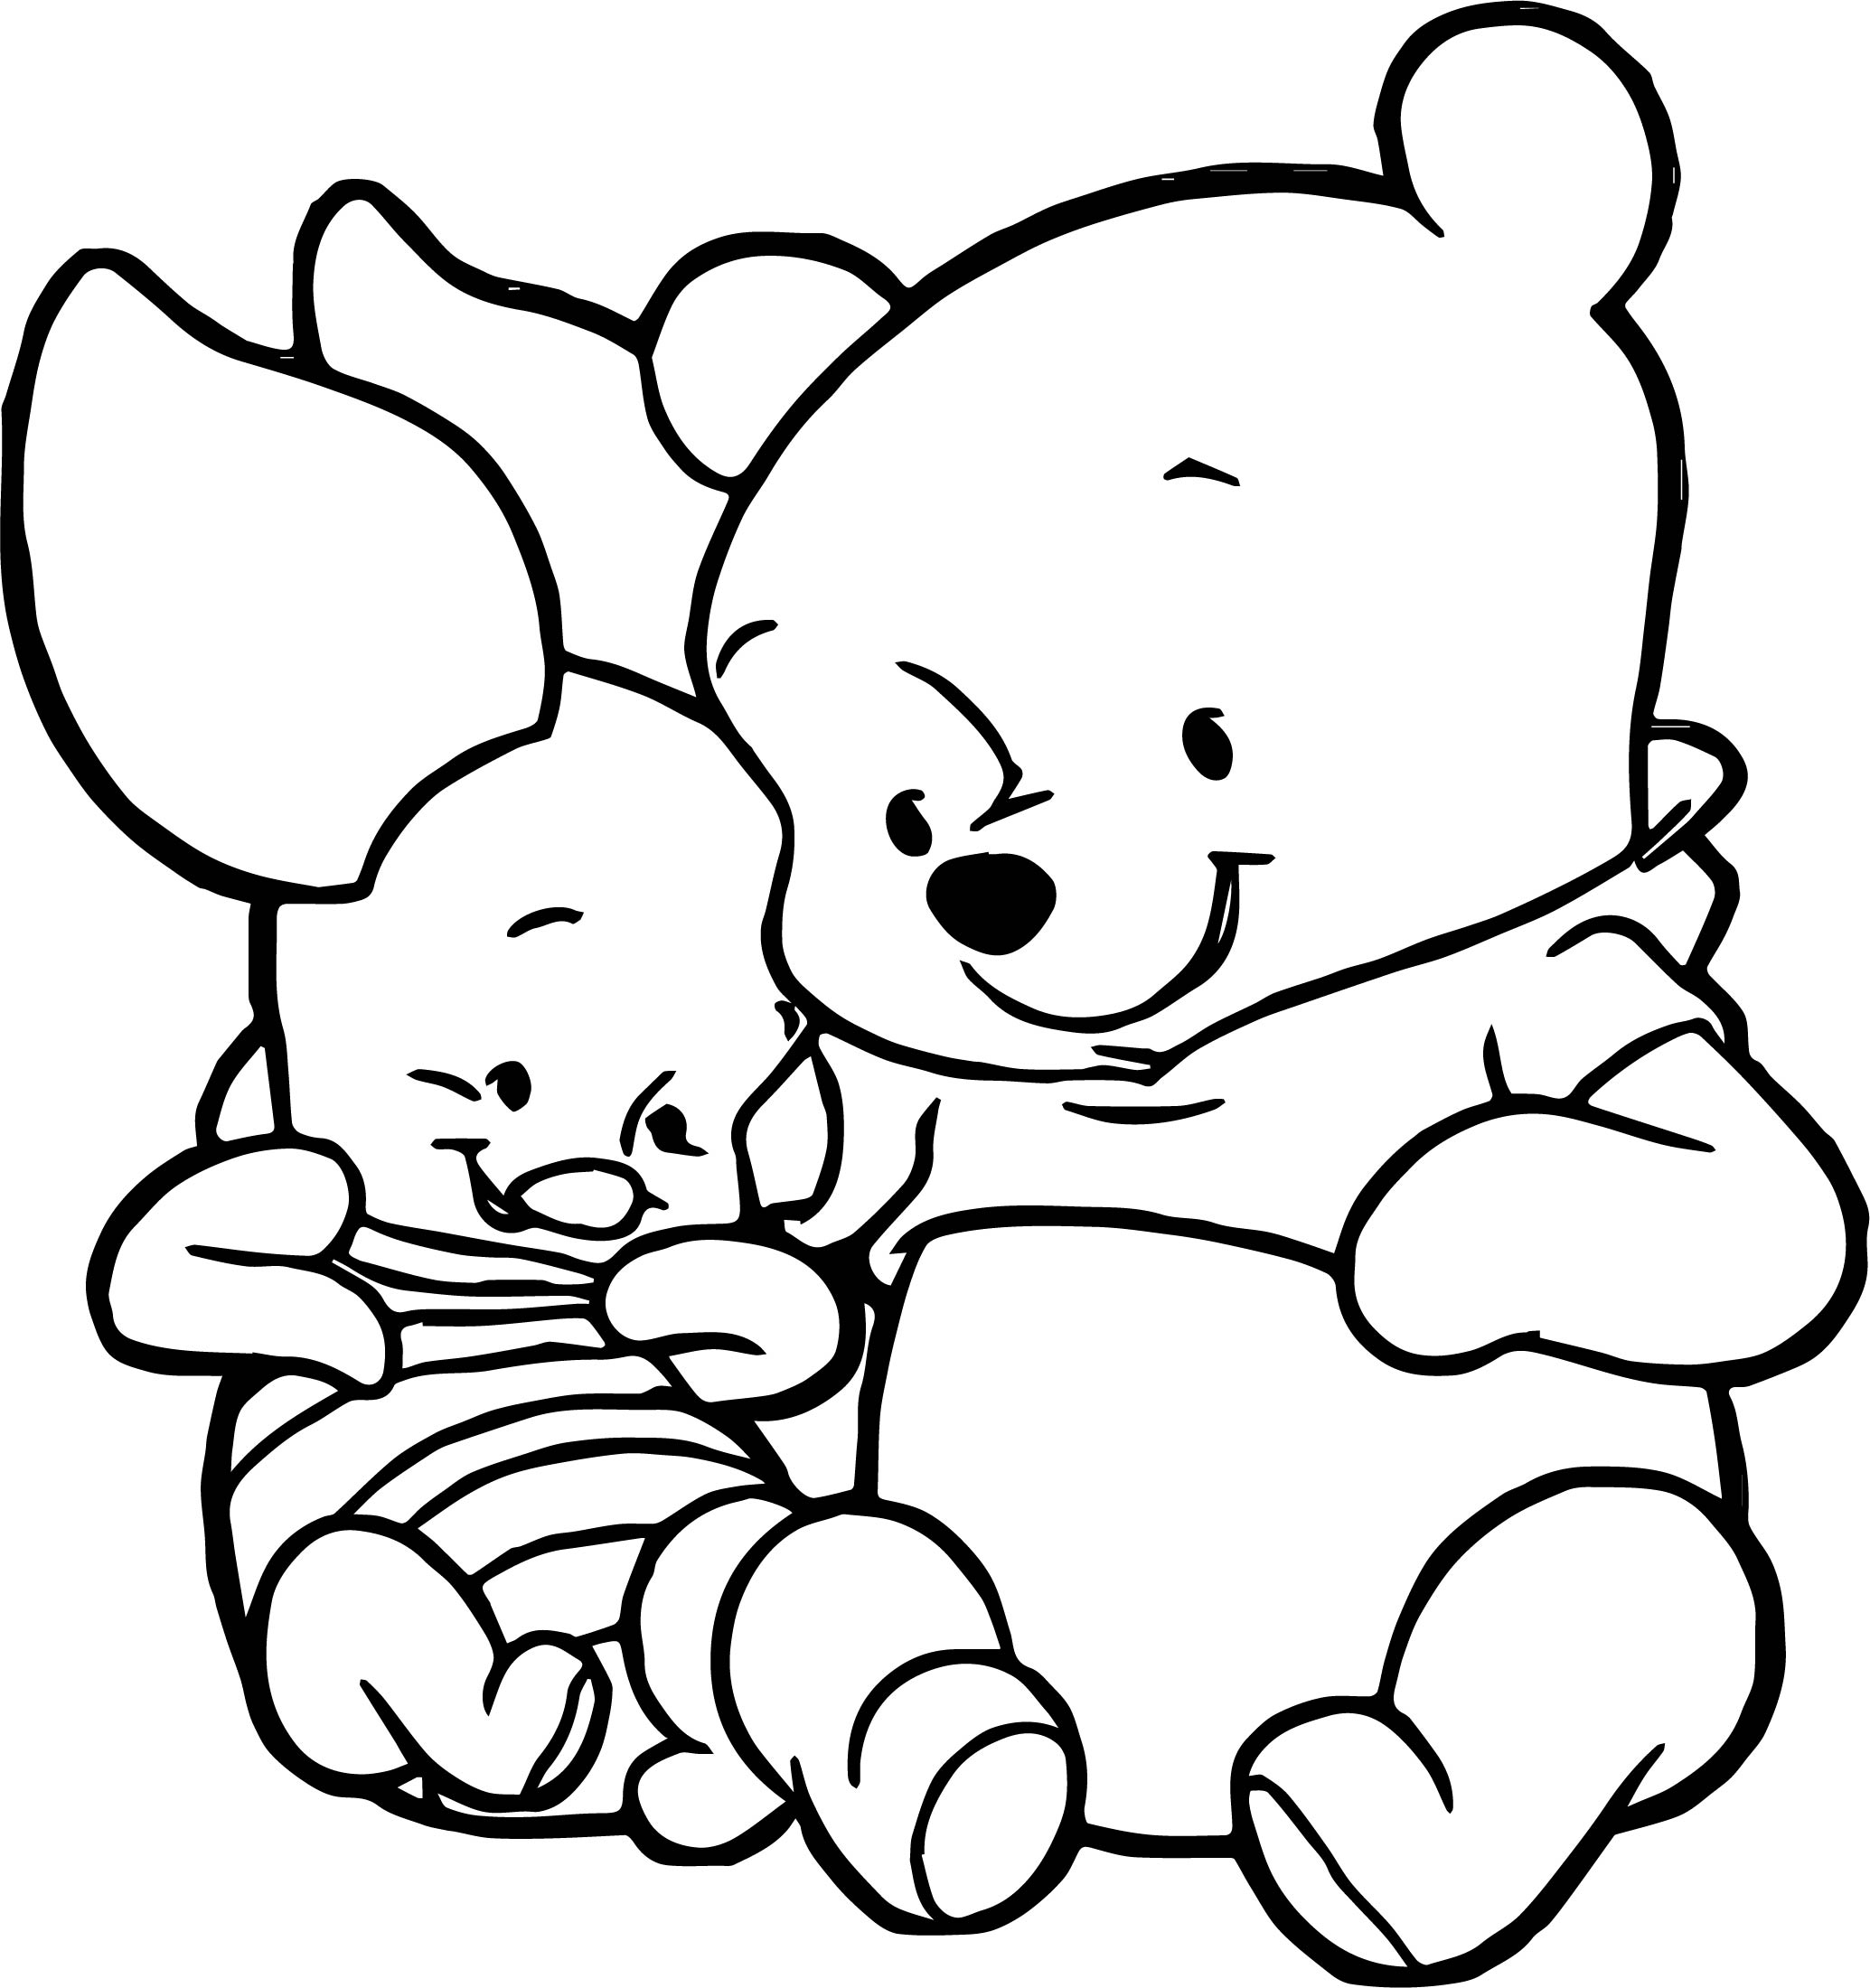 baby tigger coloring pages - cute baby piglet winnie the pooh coloring page